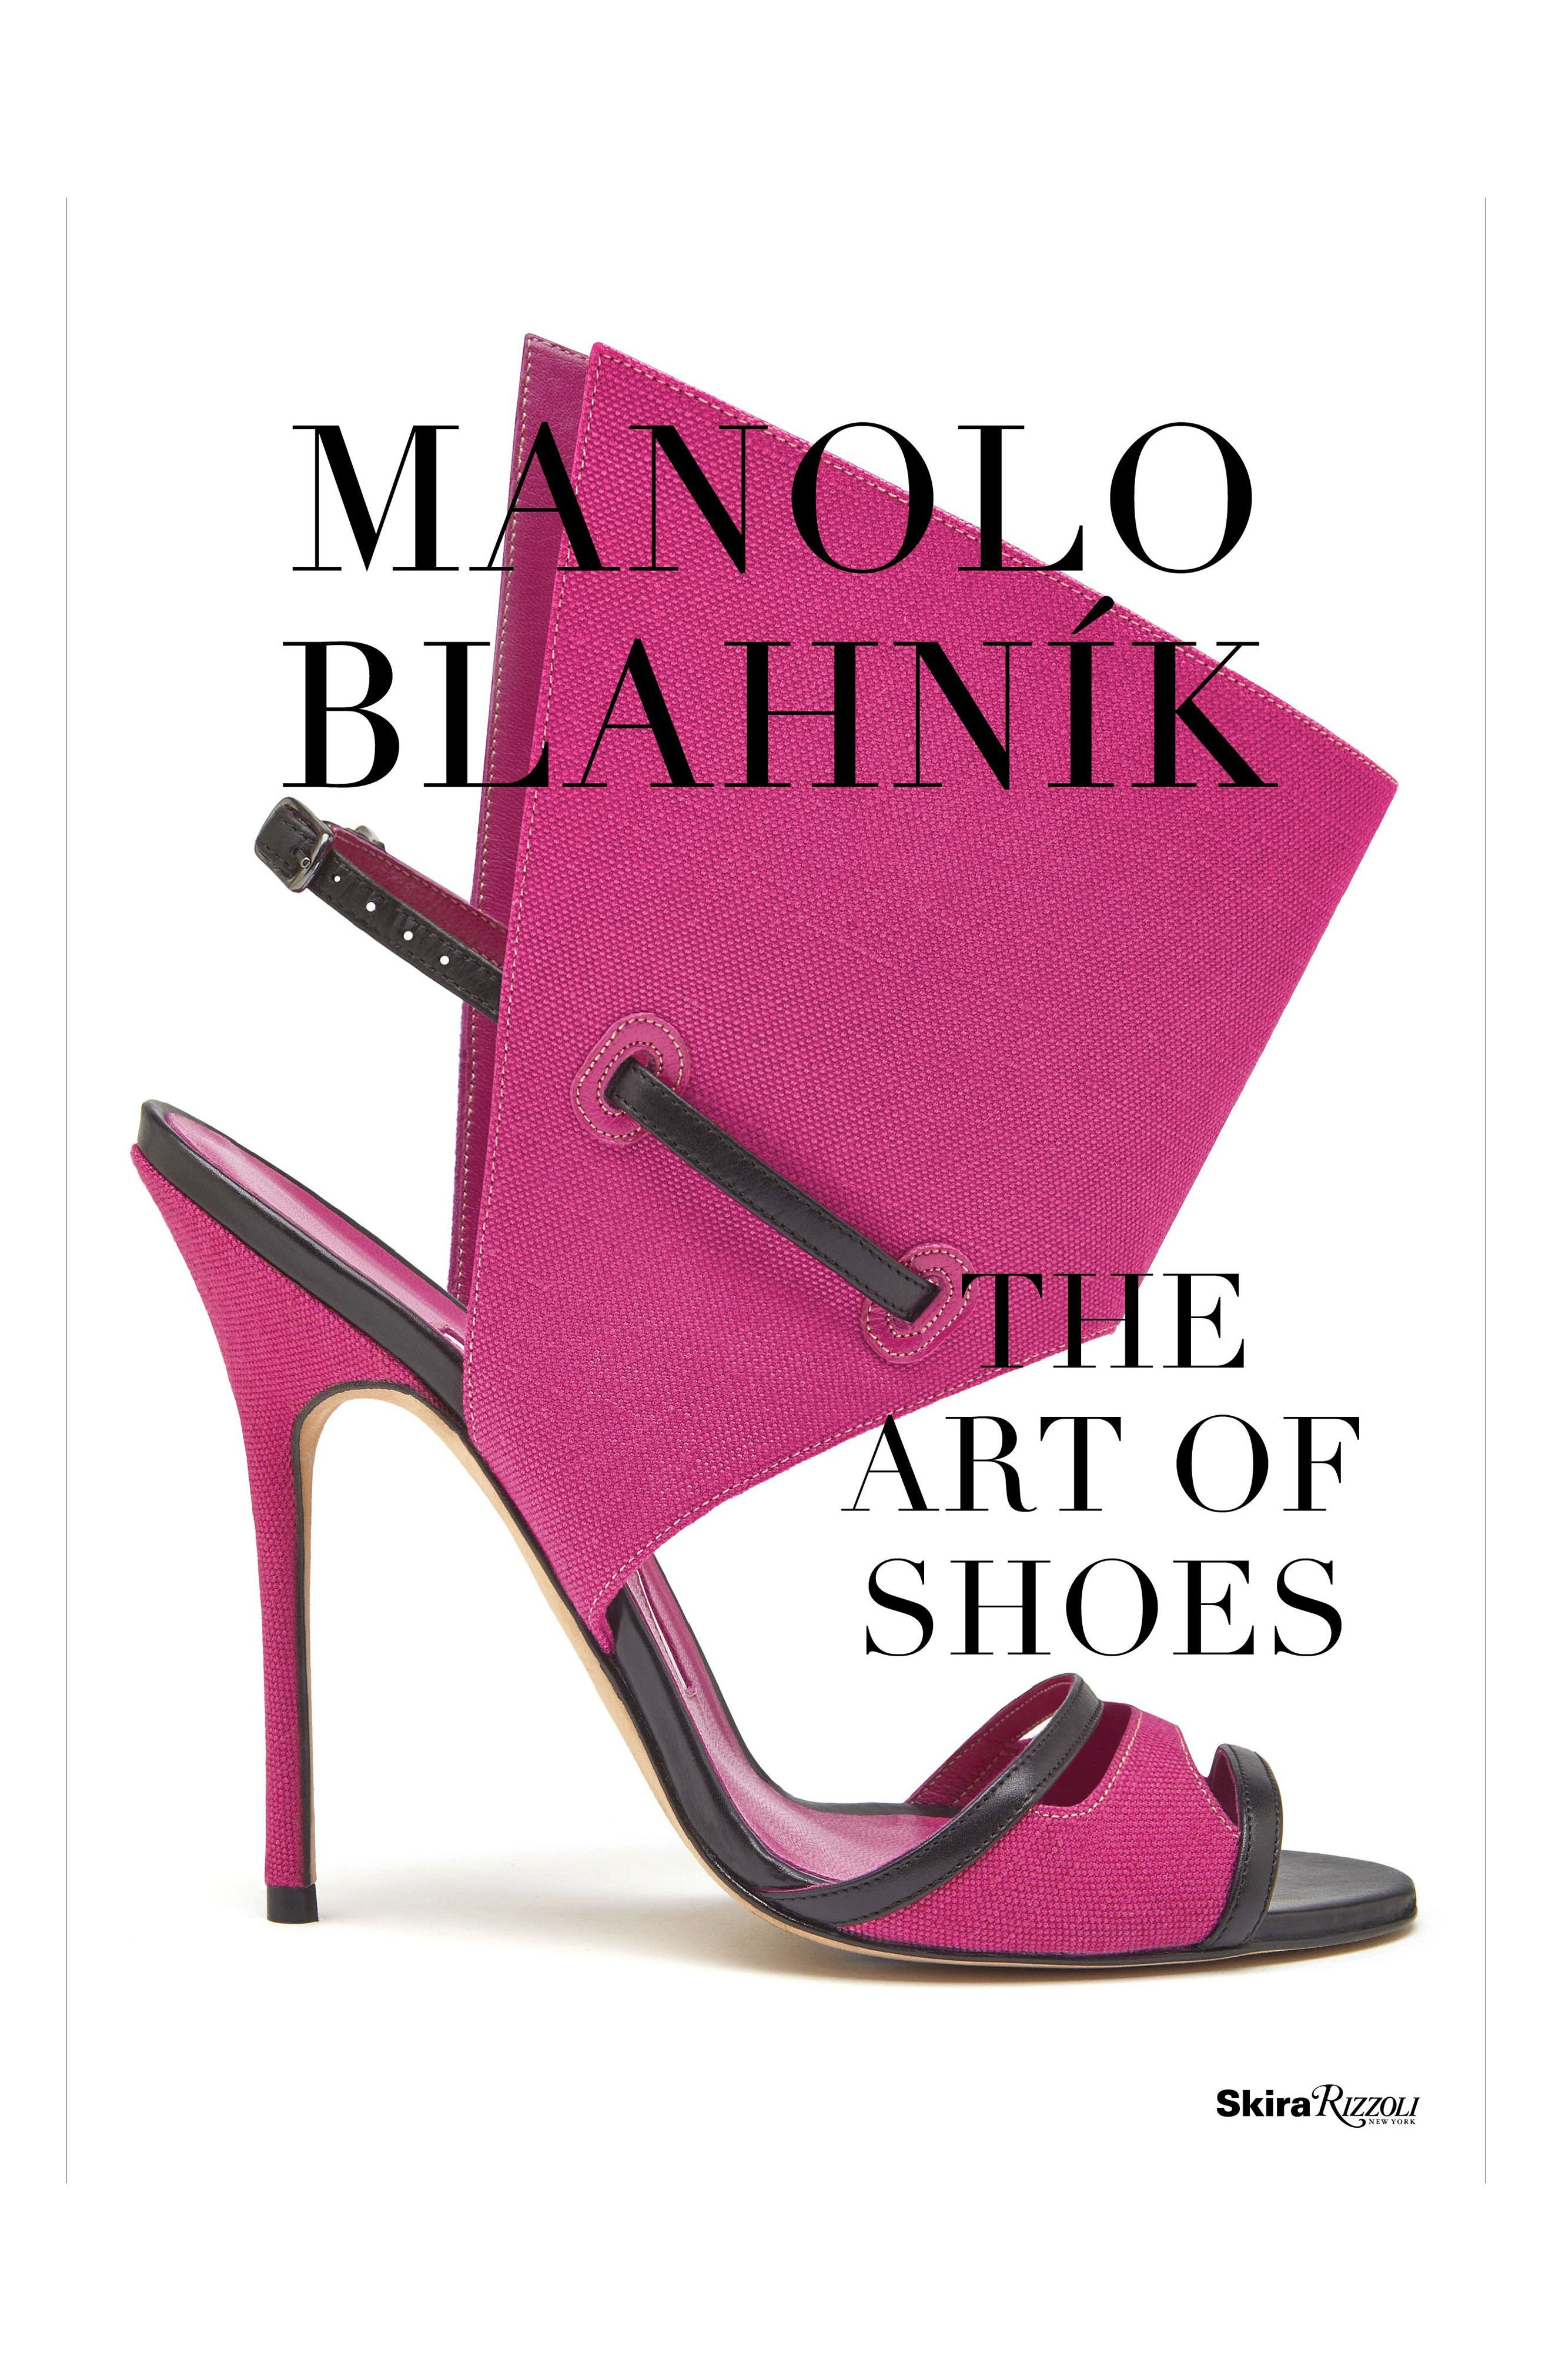 Alternate Image 1 Selected - Manolo Blahnik: The Art of Shoes Book